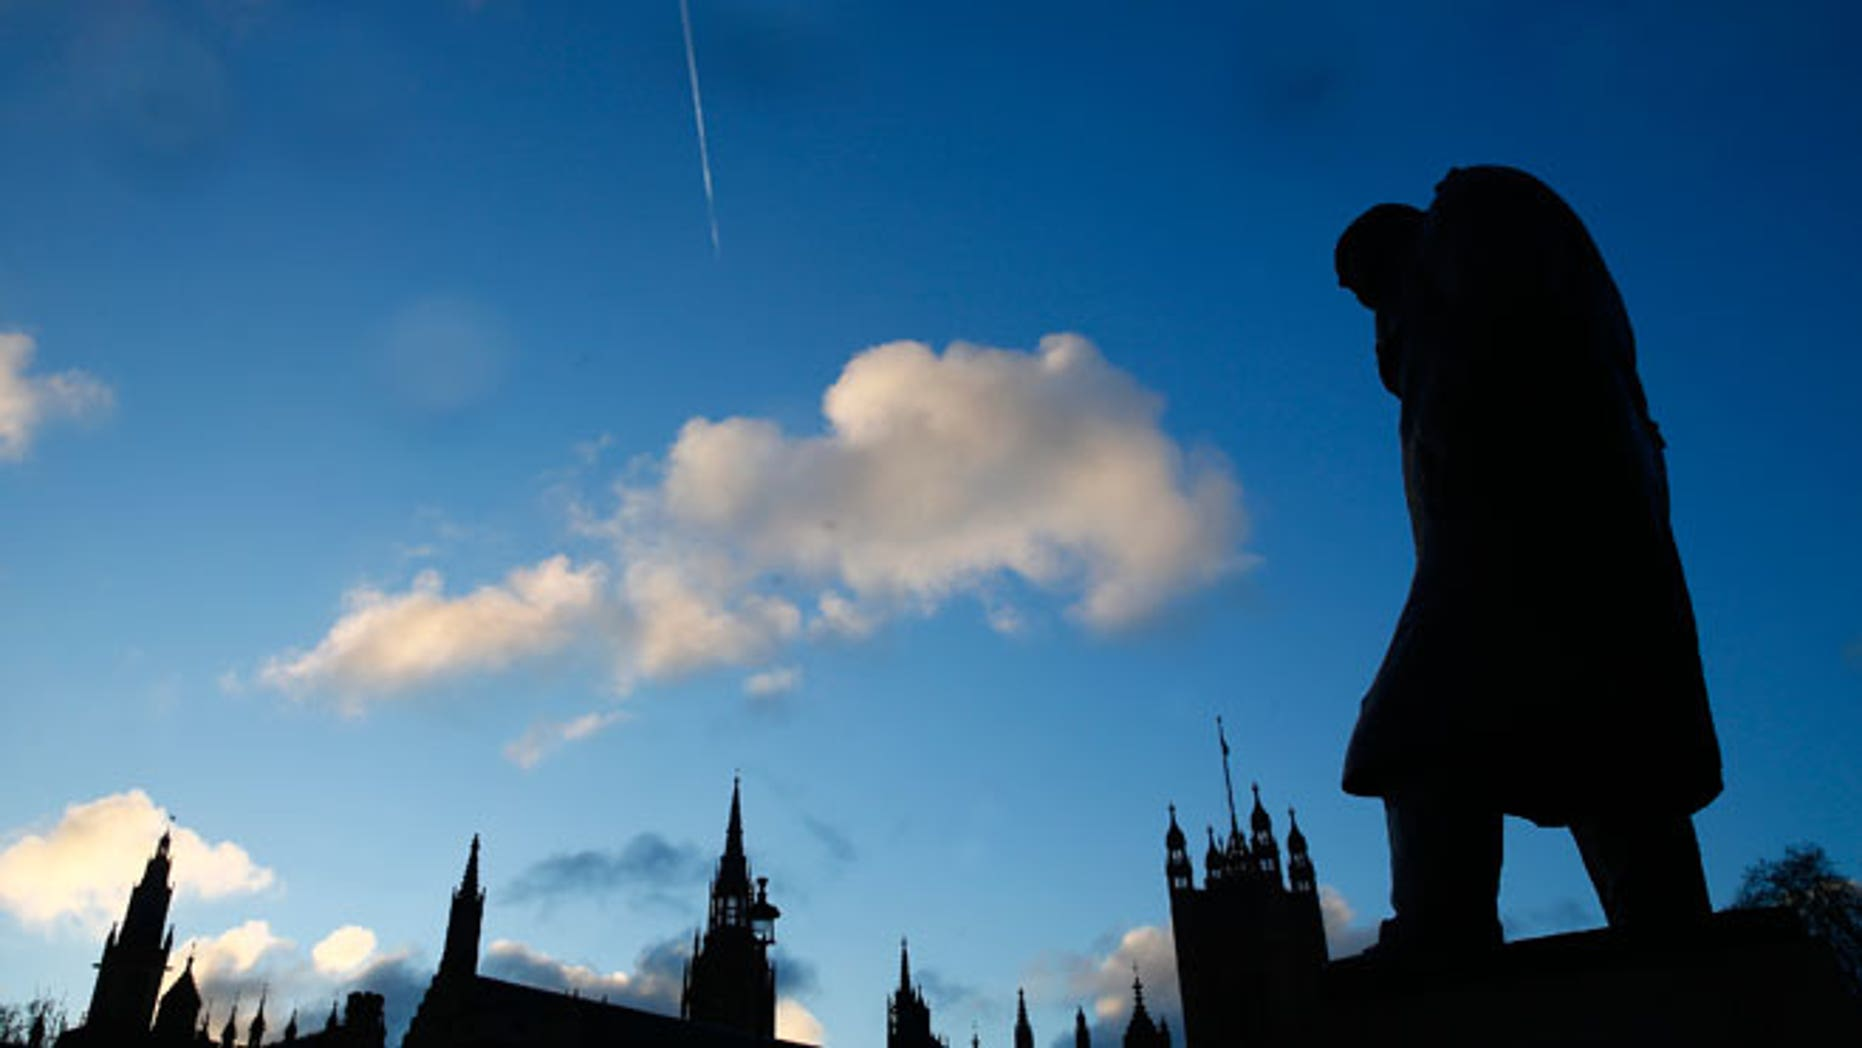 The statue of Britain's former Prime Minister Winston Churchill is silhouetted in front of the Houses of Parliament in London, January 30, 2015.